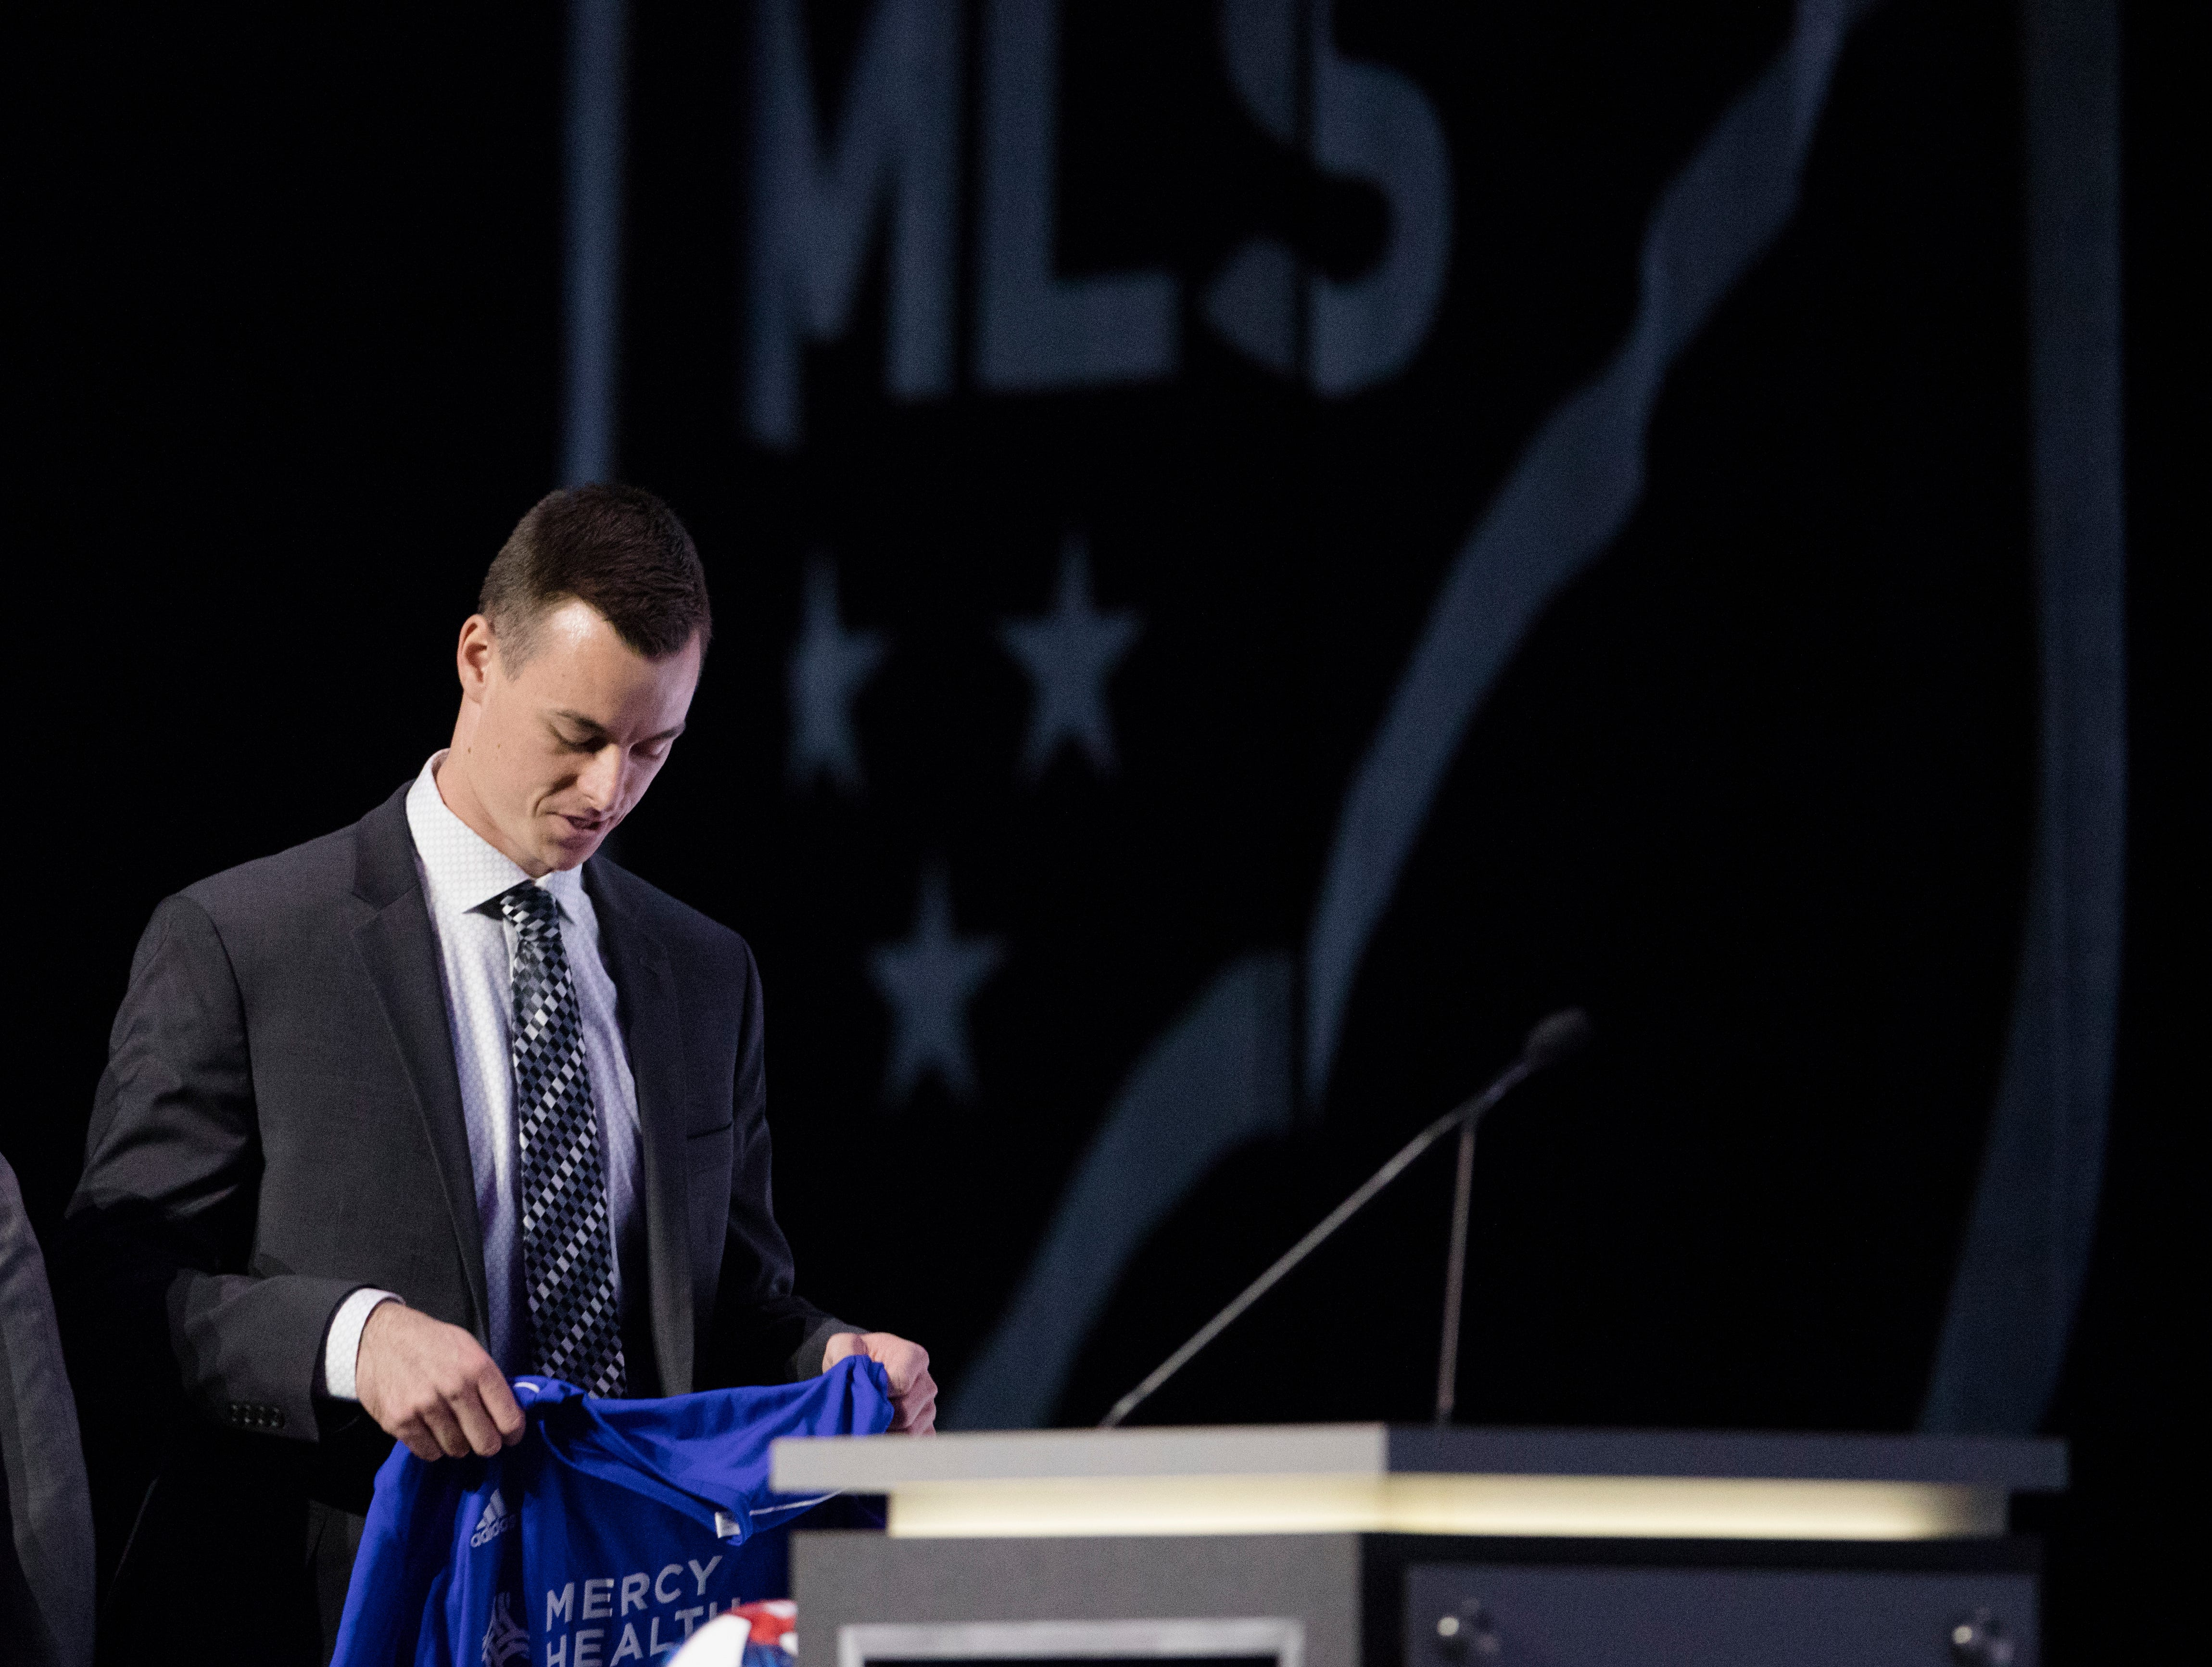 Jimmy Hague walks to the podium after being drafted by FC Cincinnati as the second round of the MLS Superdraft on Friday, Jan. 11, 2019 in Chicago, Illinois.